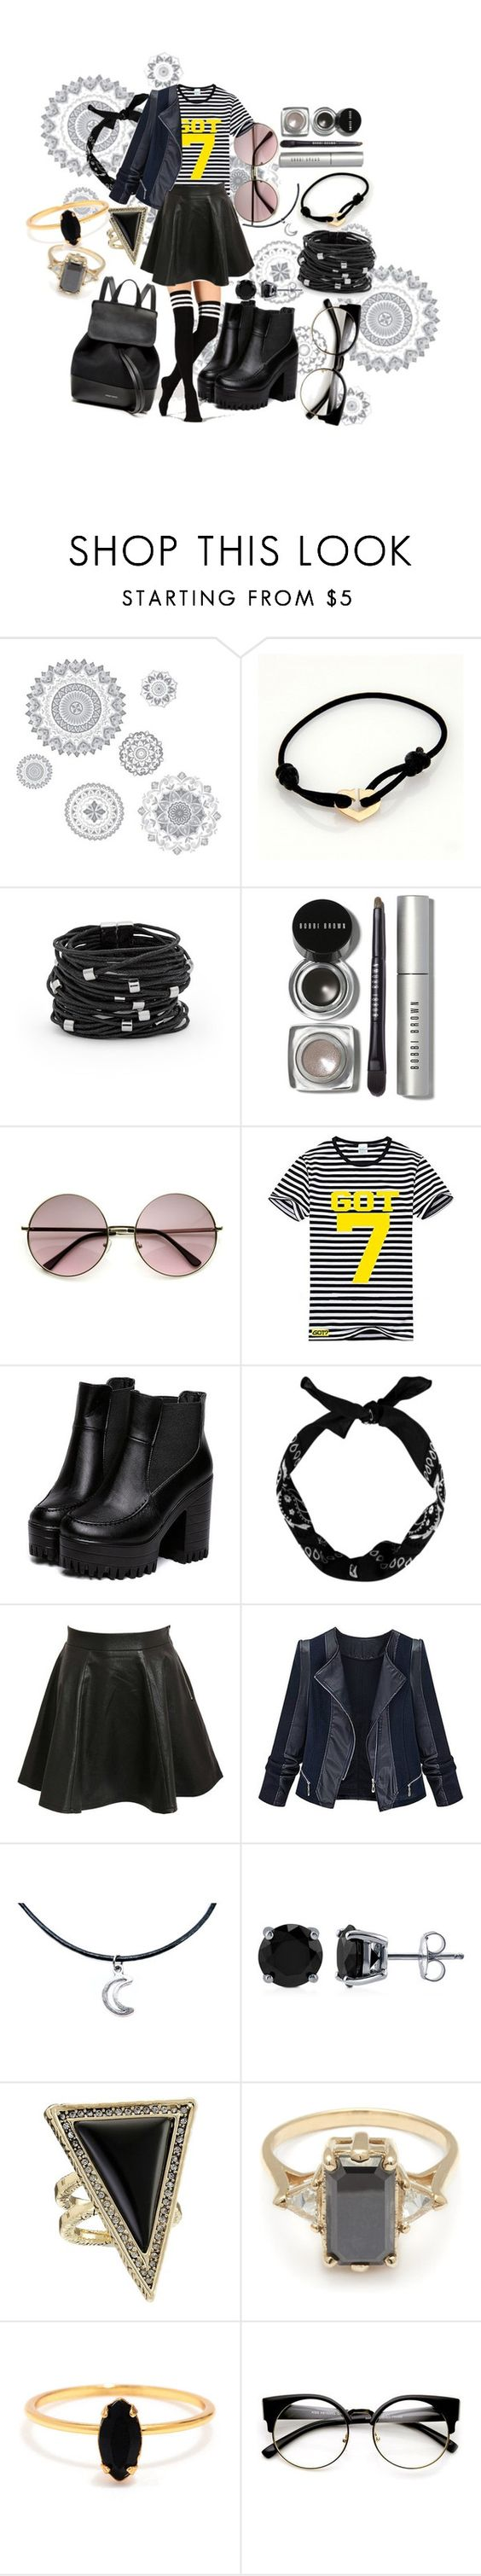 """""""Fã Got7"""" by sarethoran on Polyvore featuring WallPops, Cartier, Chico's, Bobbi Brown Cosmetics, Bambam, Pilot, BERRICLE, House of Harlow 1960, BEA and Bing Bang"""